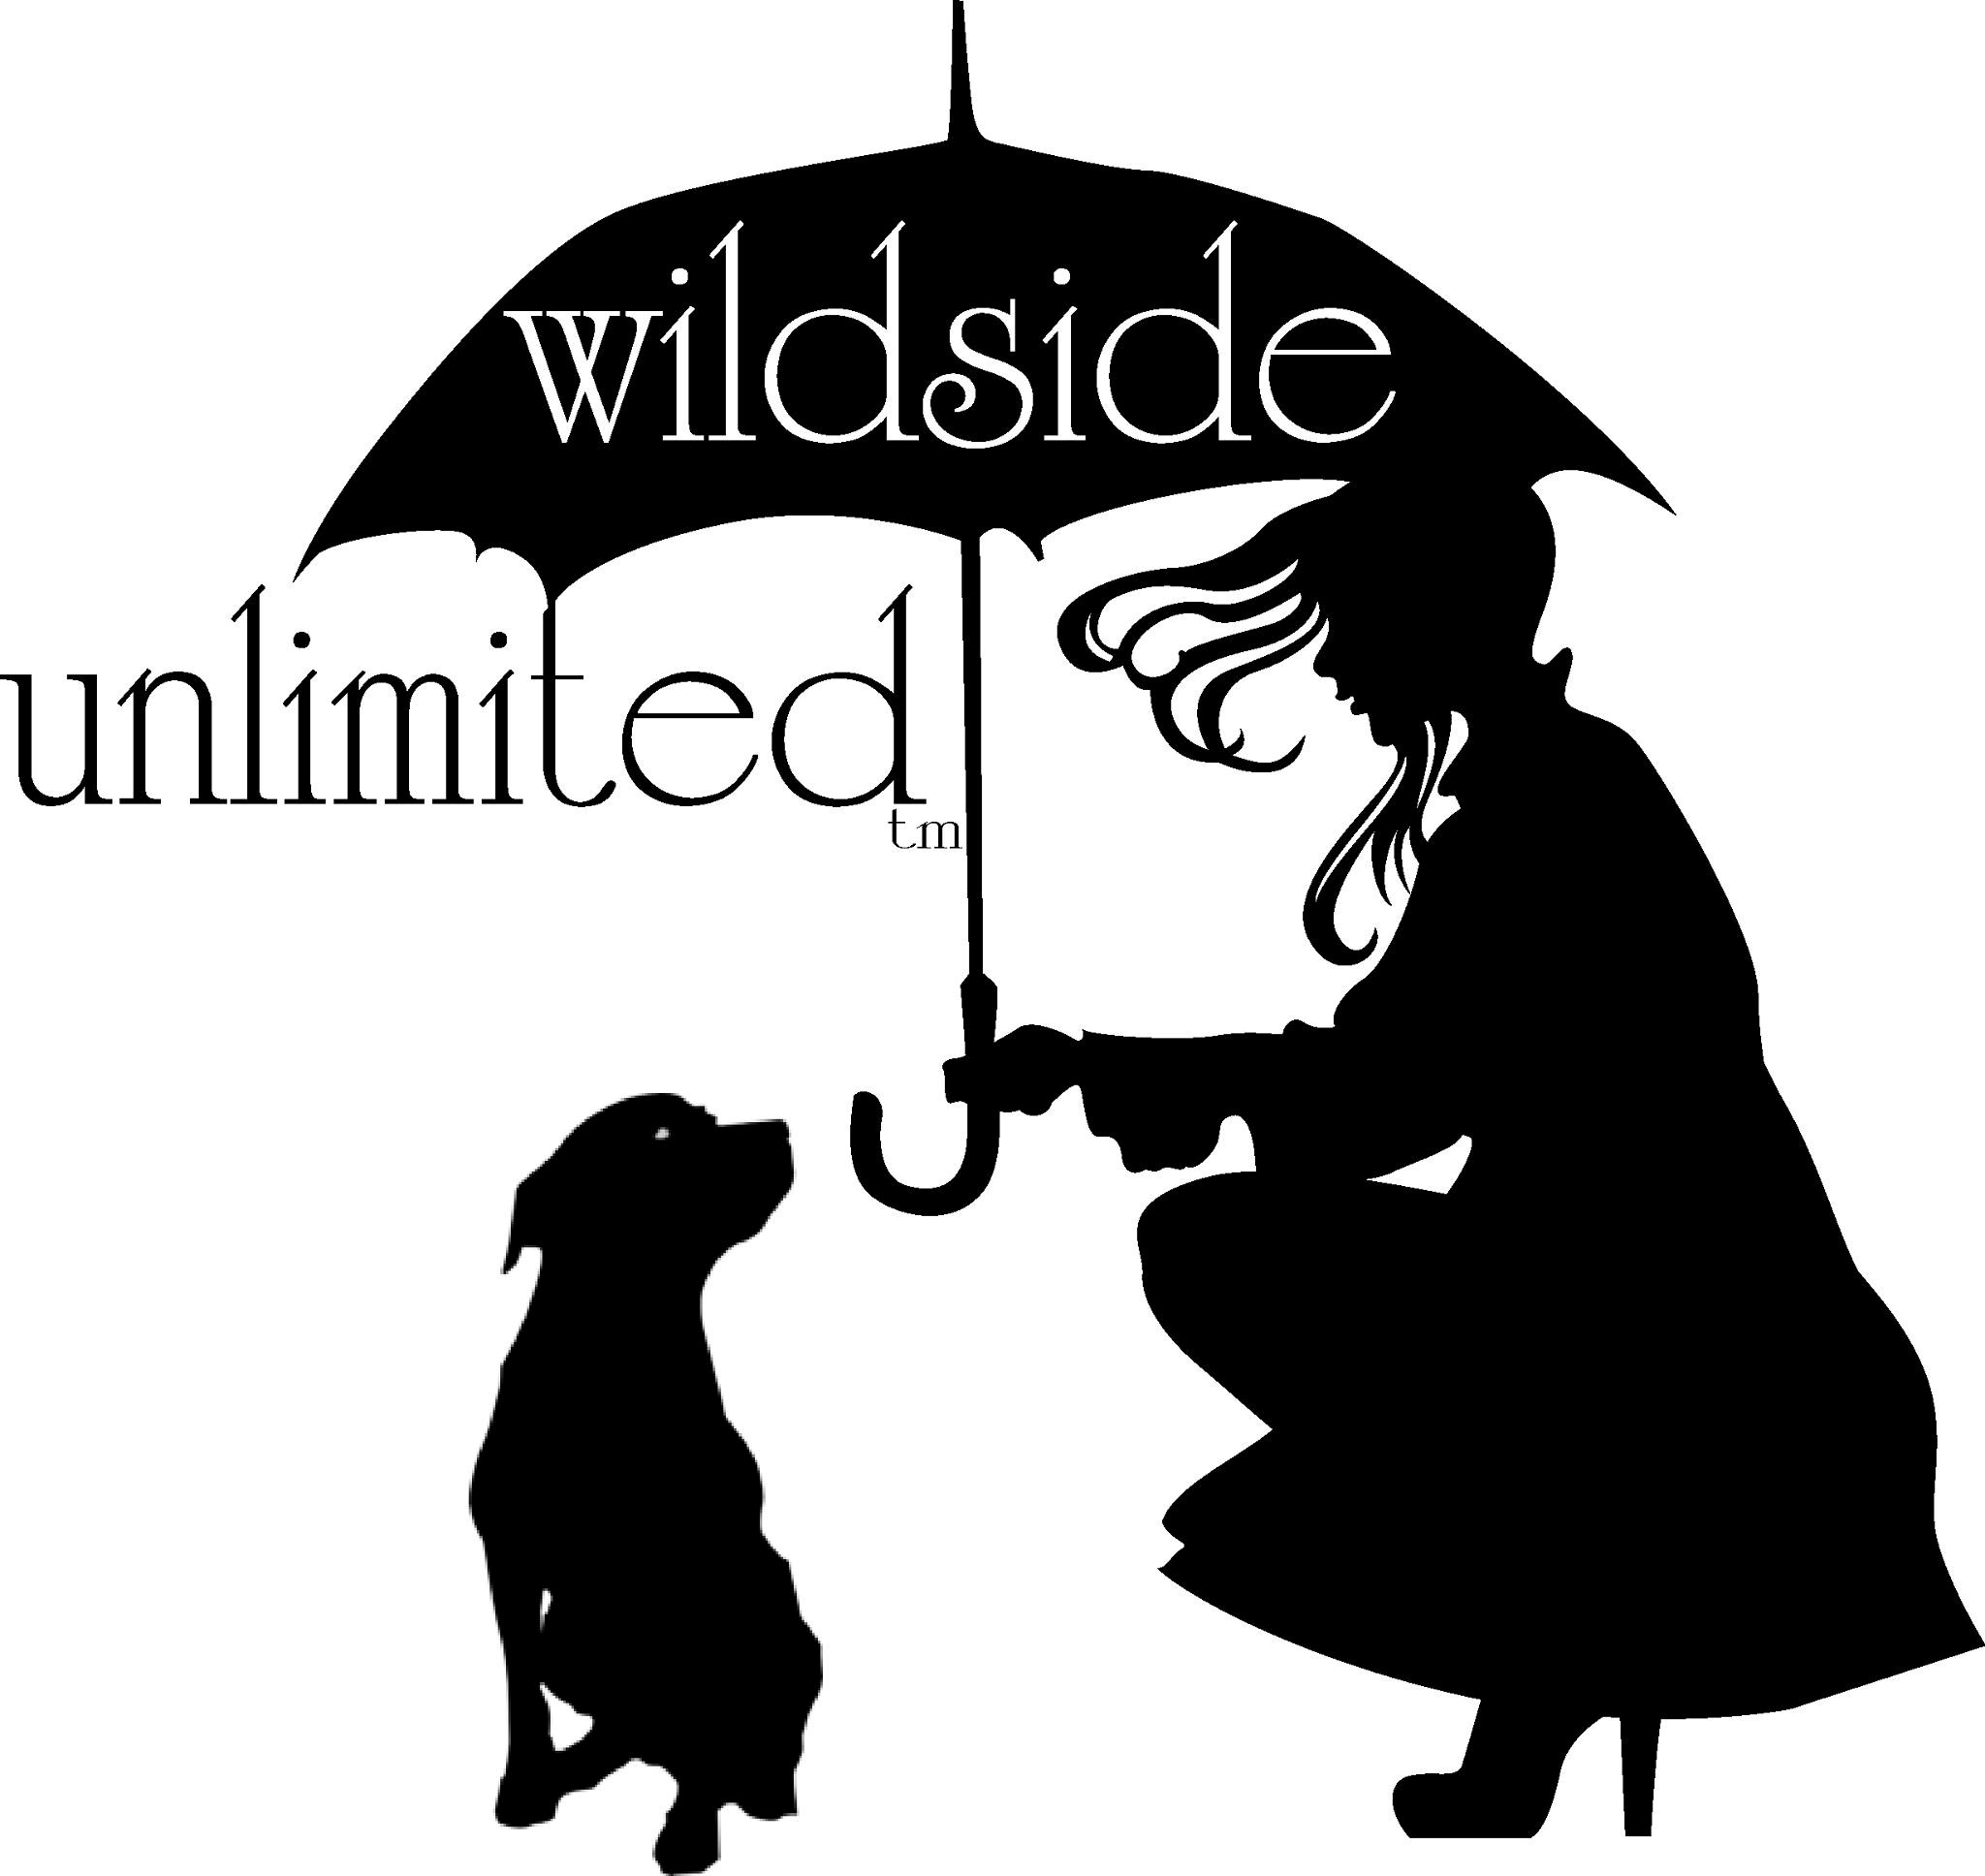 Wildside Unlimited